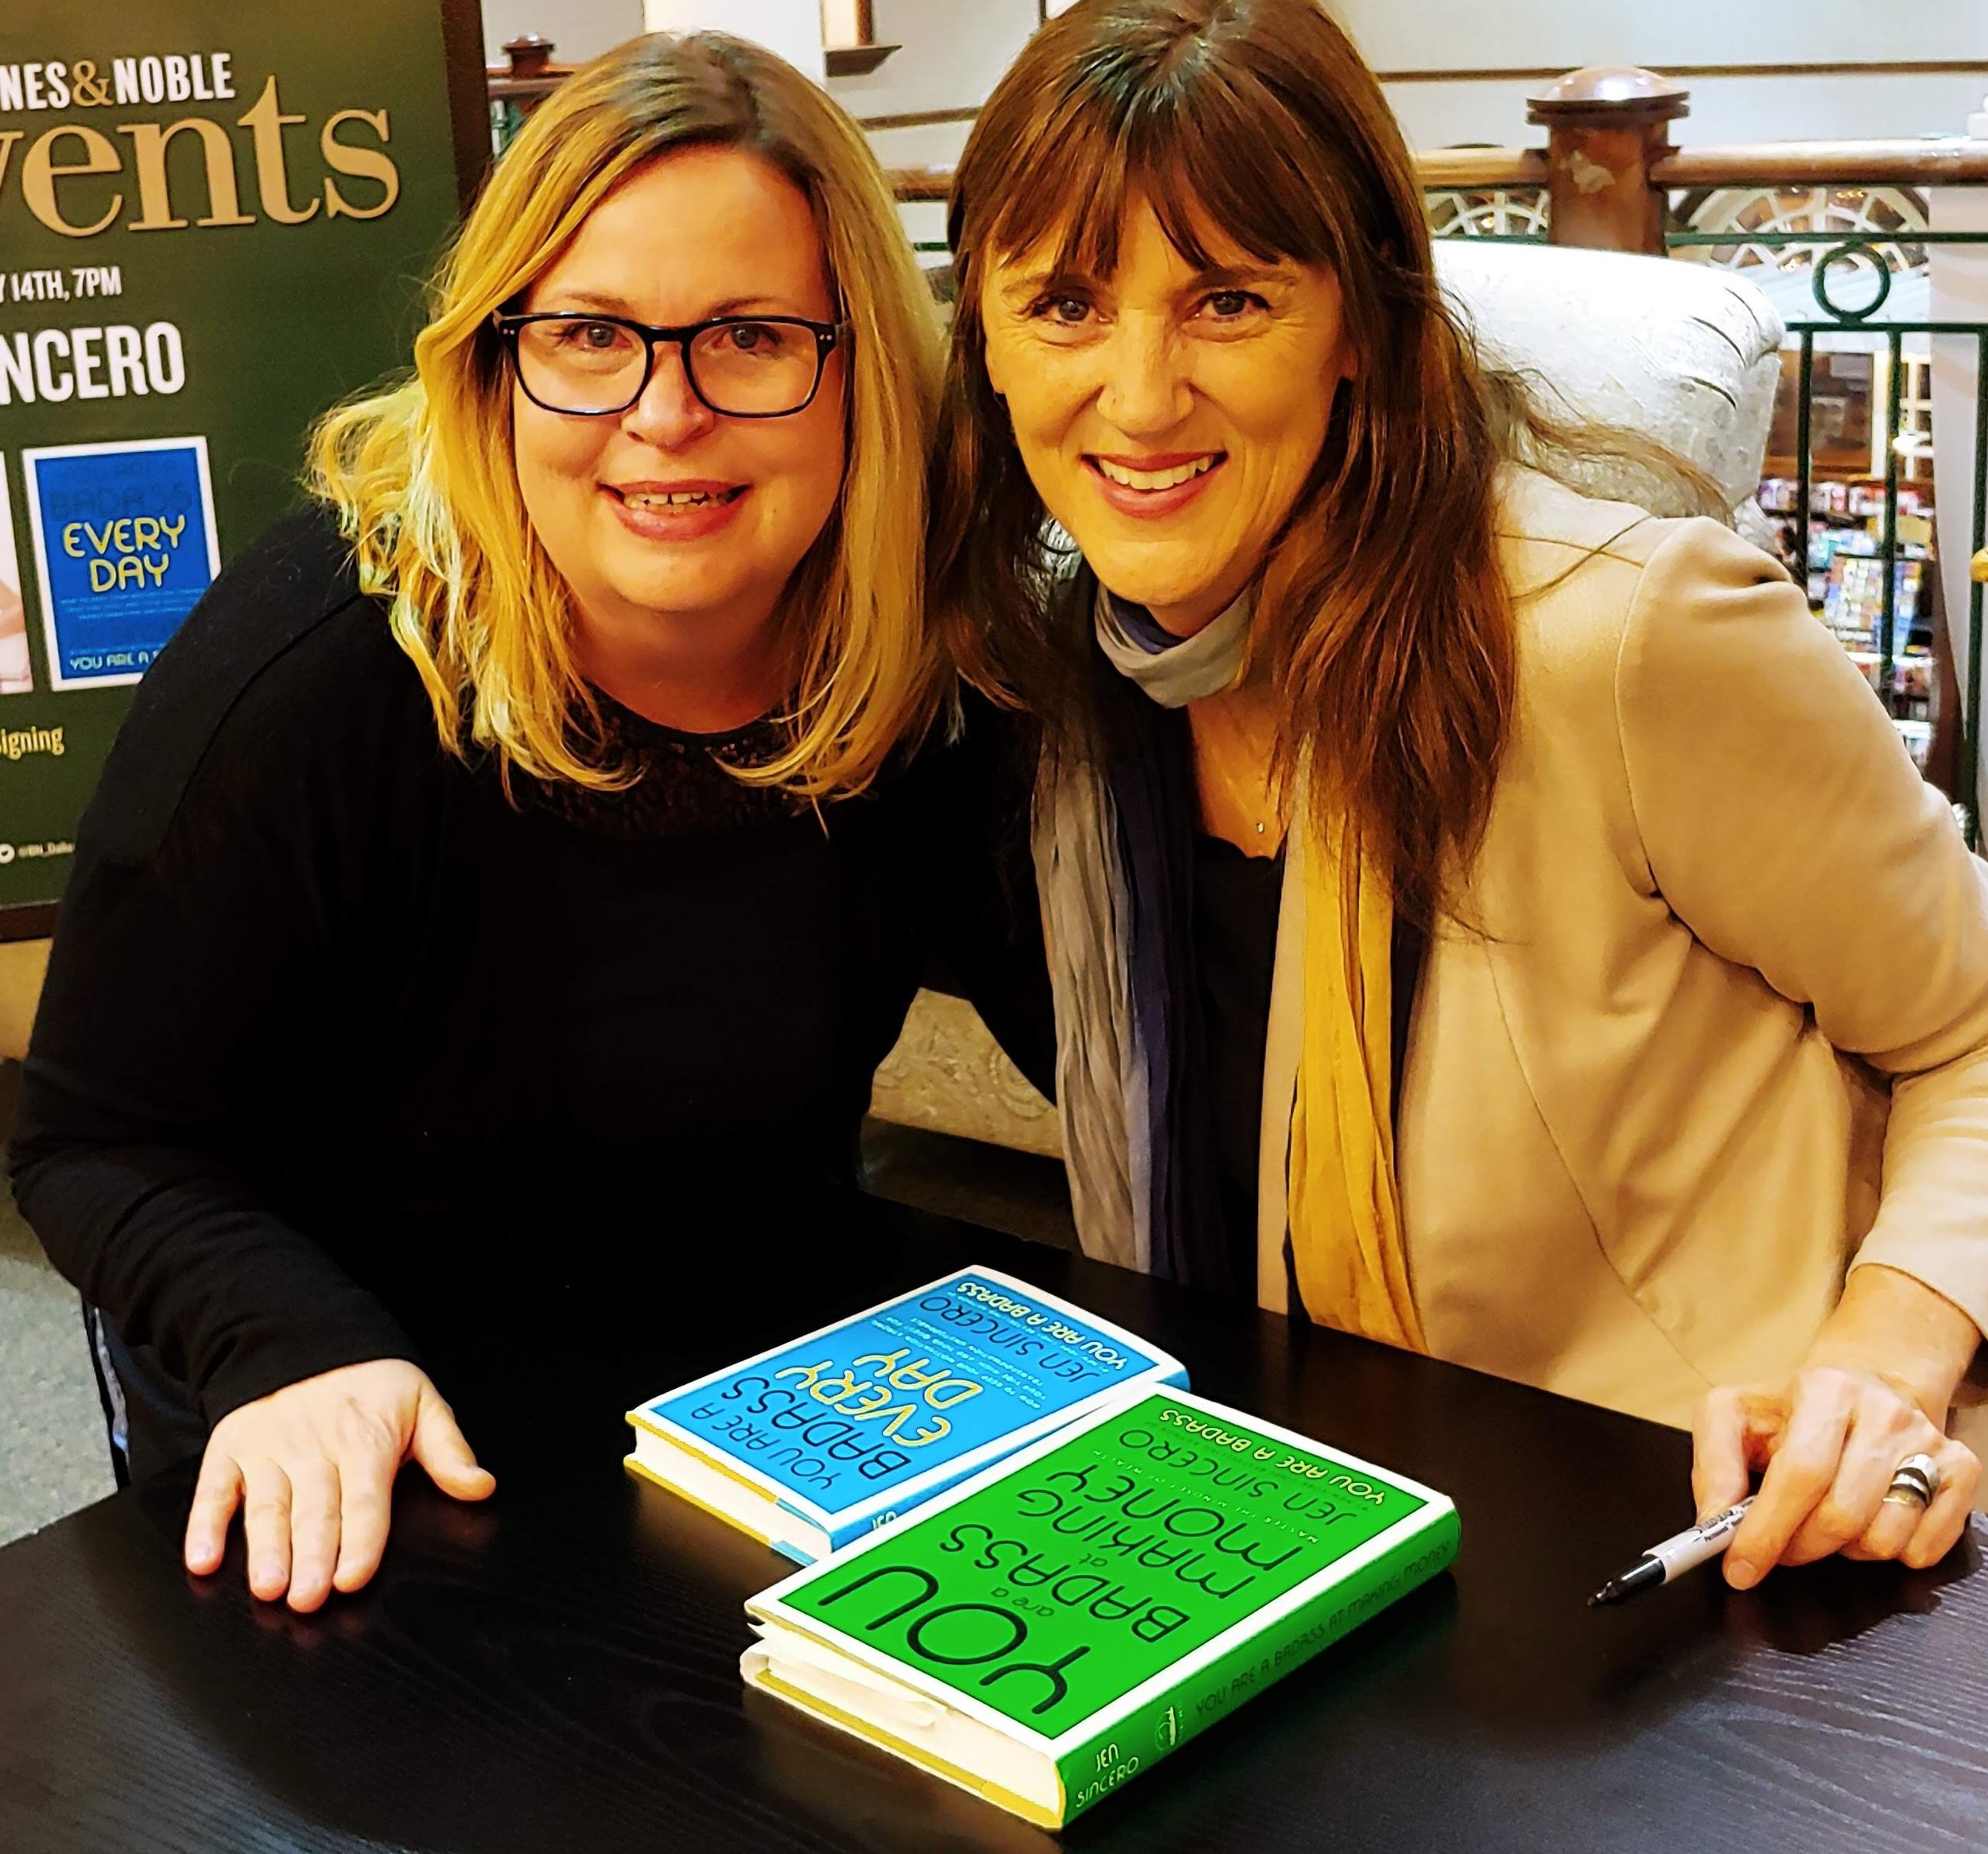 Jen Sincero and a teary-eyed me at a book signing in January 2019, nearly a year after I'd first read her books.